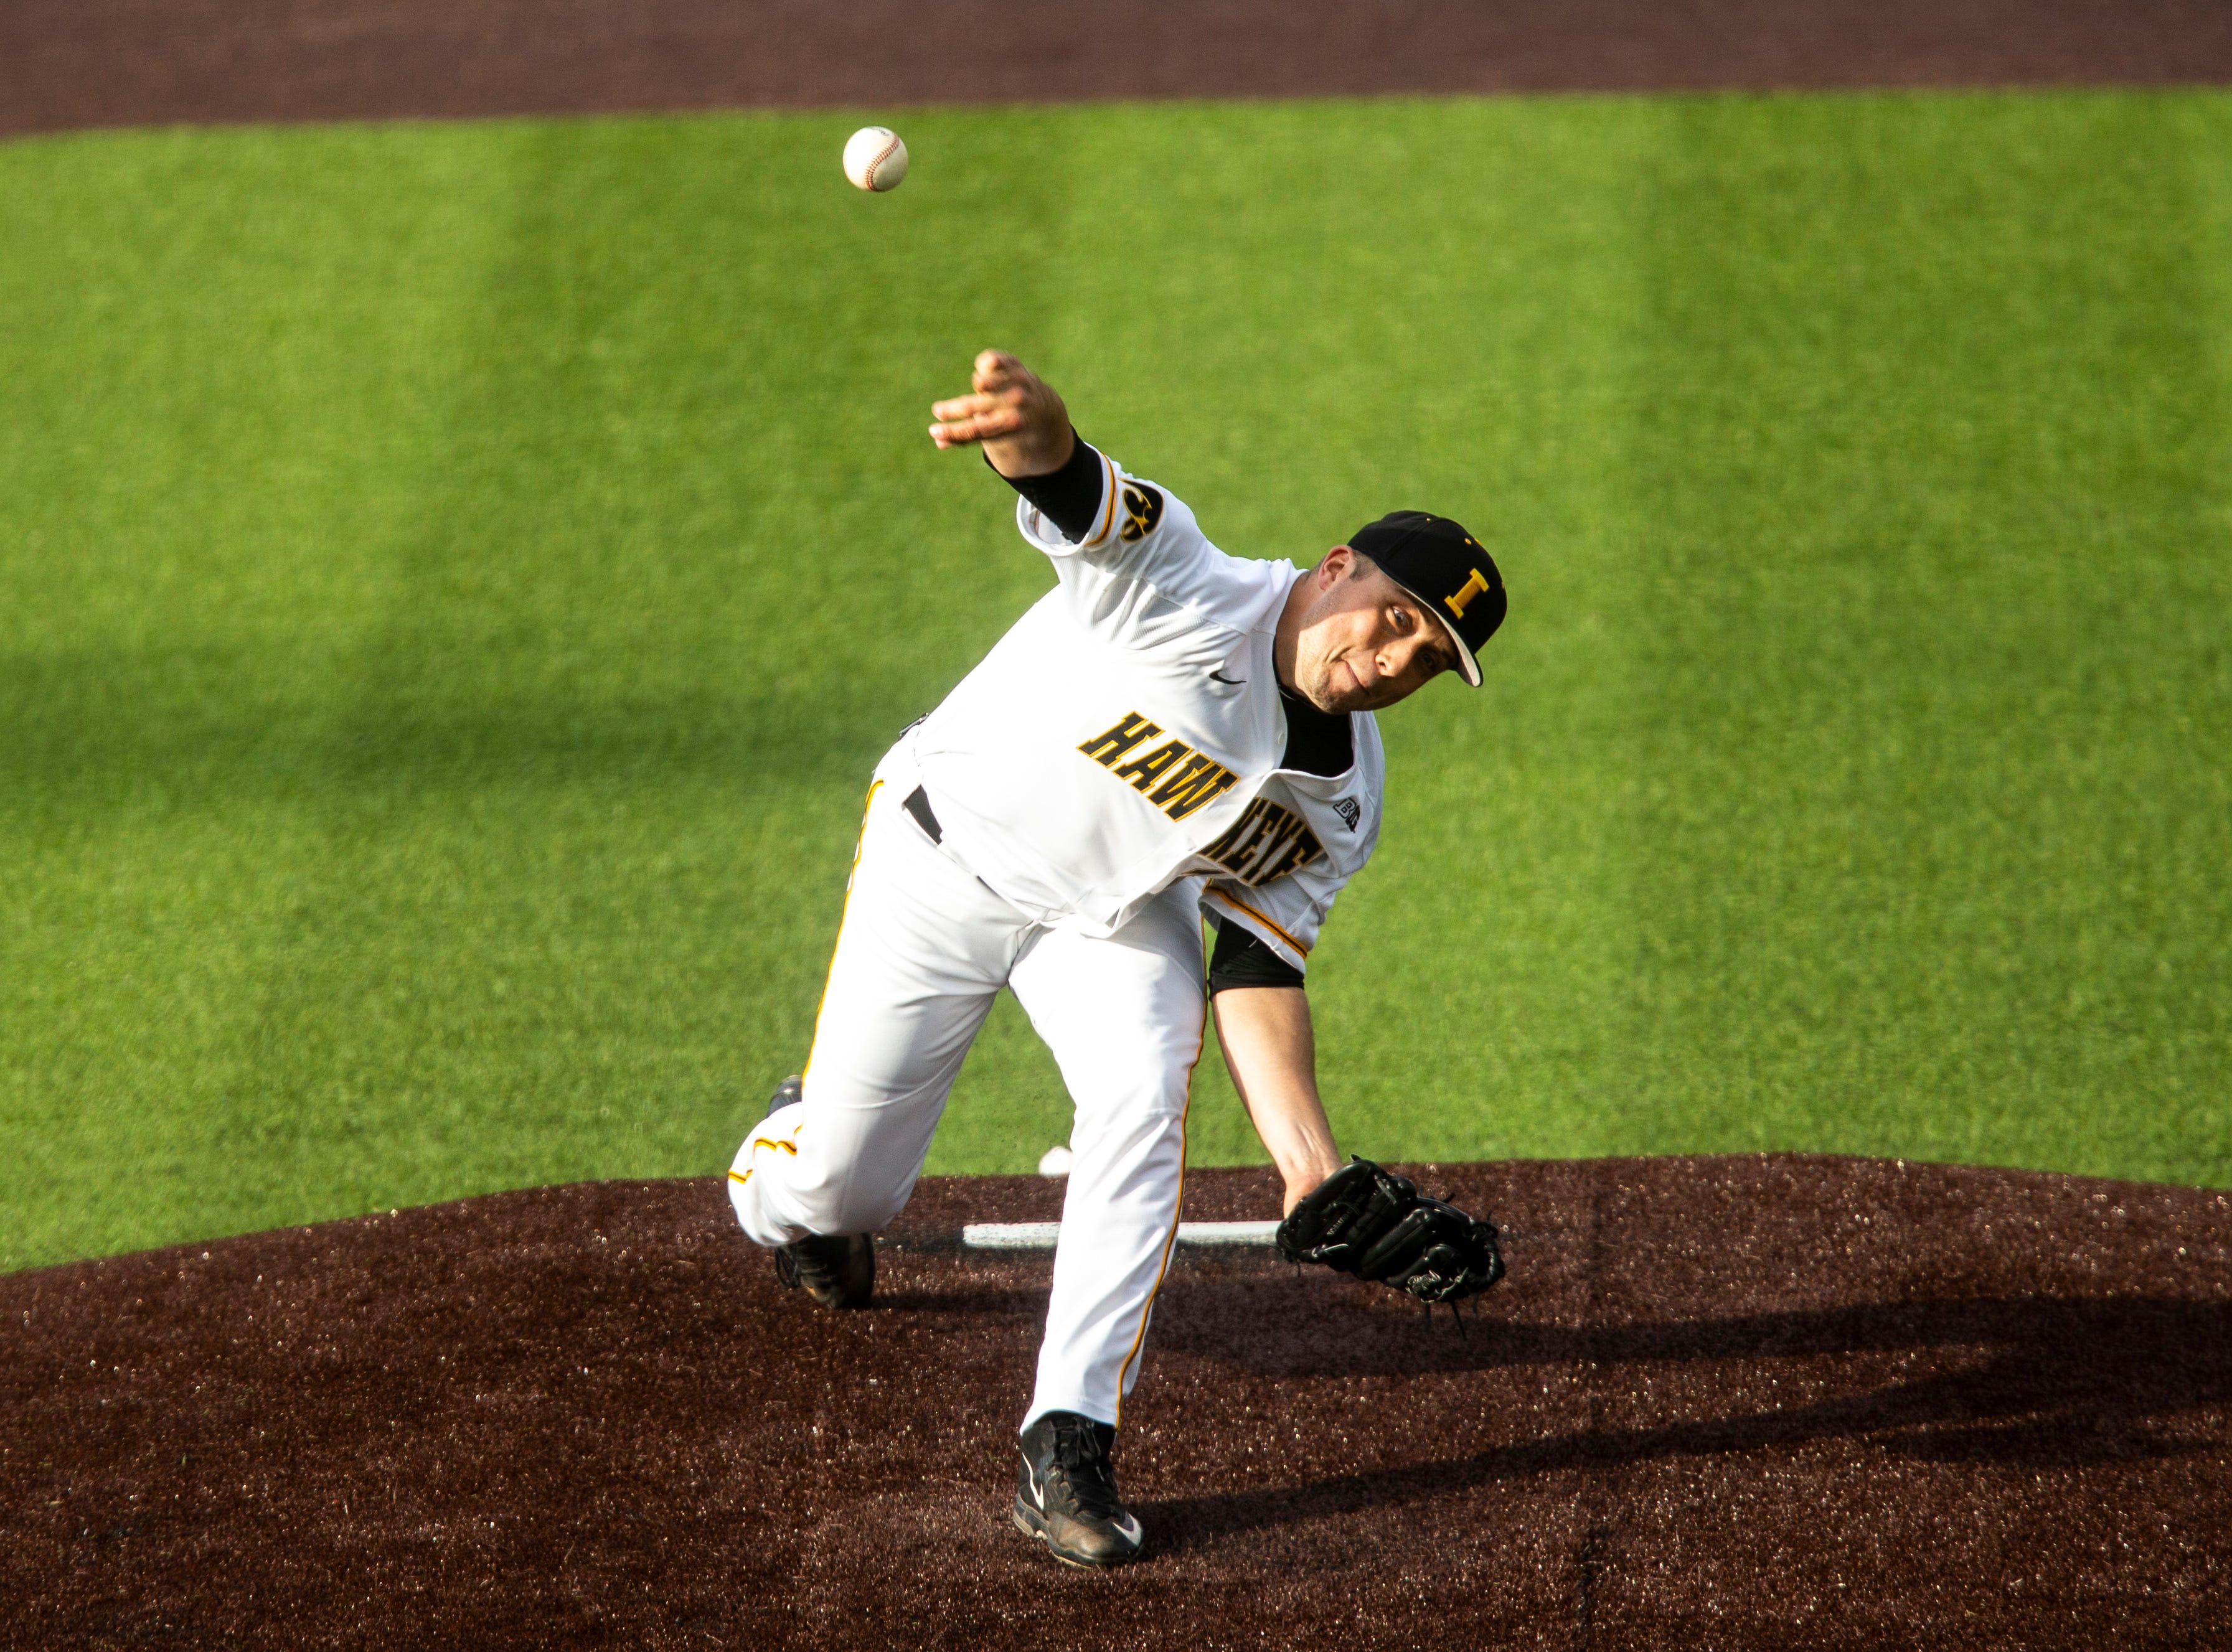 Iowa's Cole McDonald (11) delivers a pitch during NCAA non conference baseball game, Friday, May 3, 2019, at Duane Banks Field in Iowa City, Iowa.